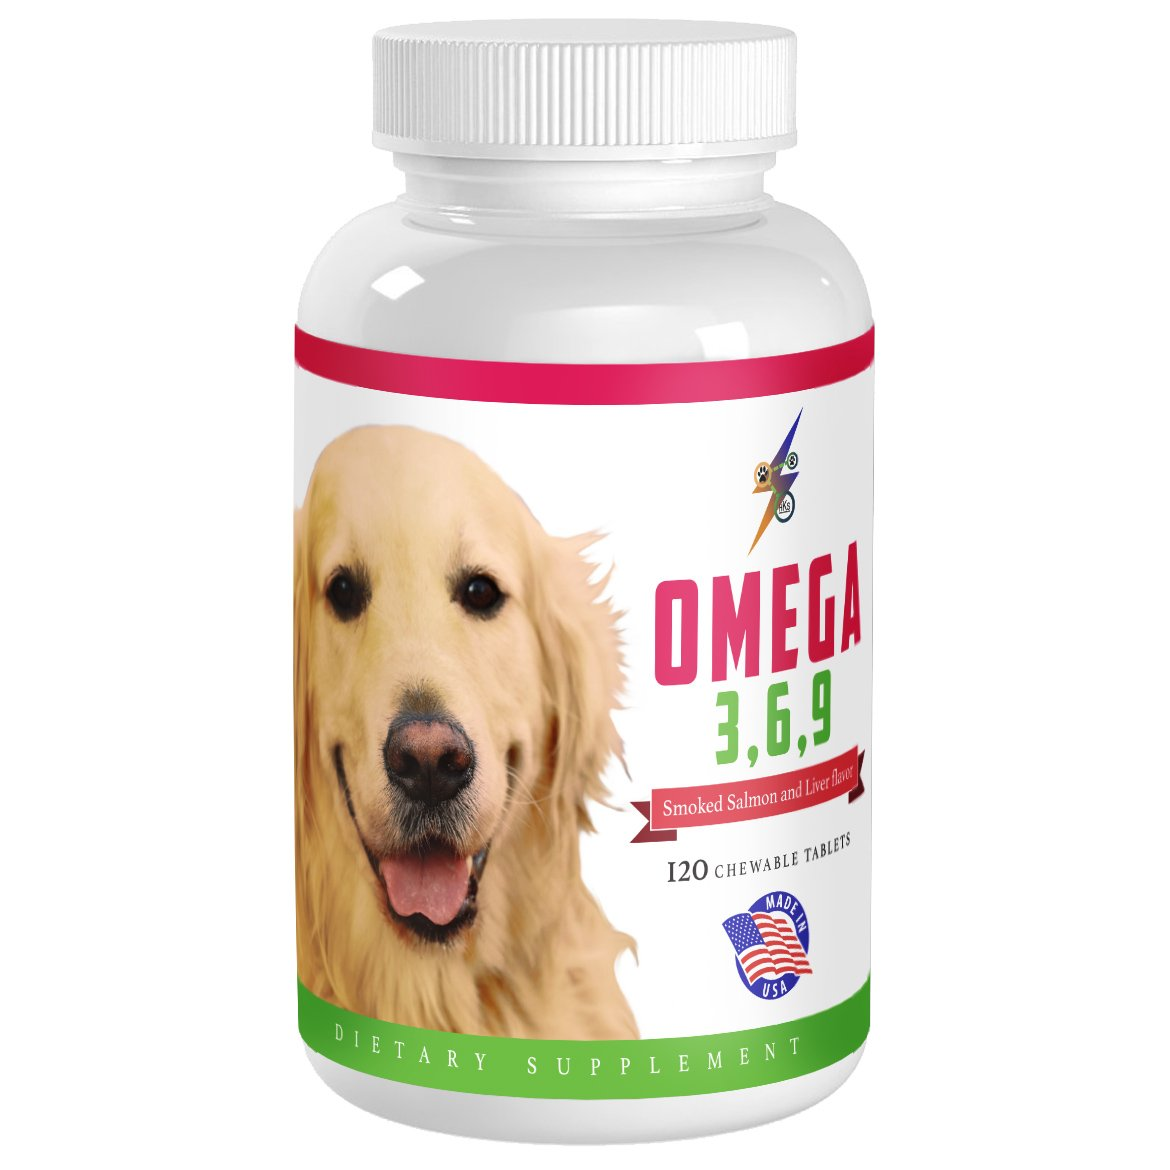 Best Omega 3 6 9 Fish Oil for Dogs - Helps with Itchy Skin, Coat, Joints, Heart and Brain - Fatty Acids Dog Supplements - Boost Immune System - 120 Chewable Tablets (Salmon Flavor) by Health Kick Store